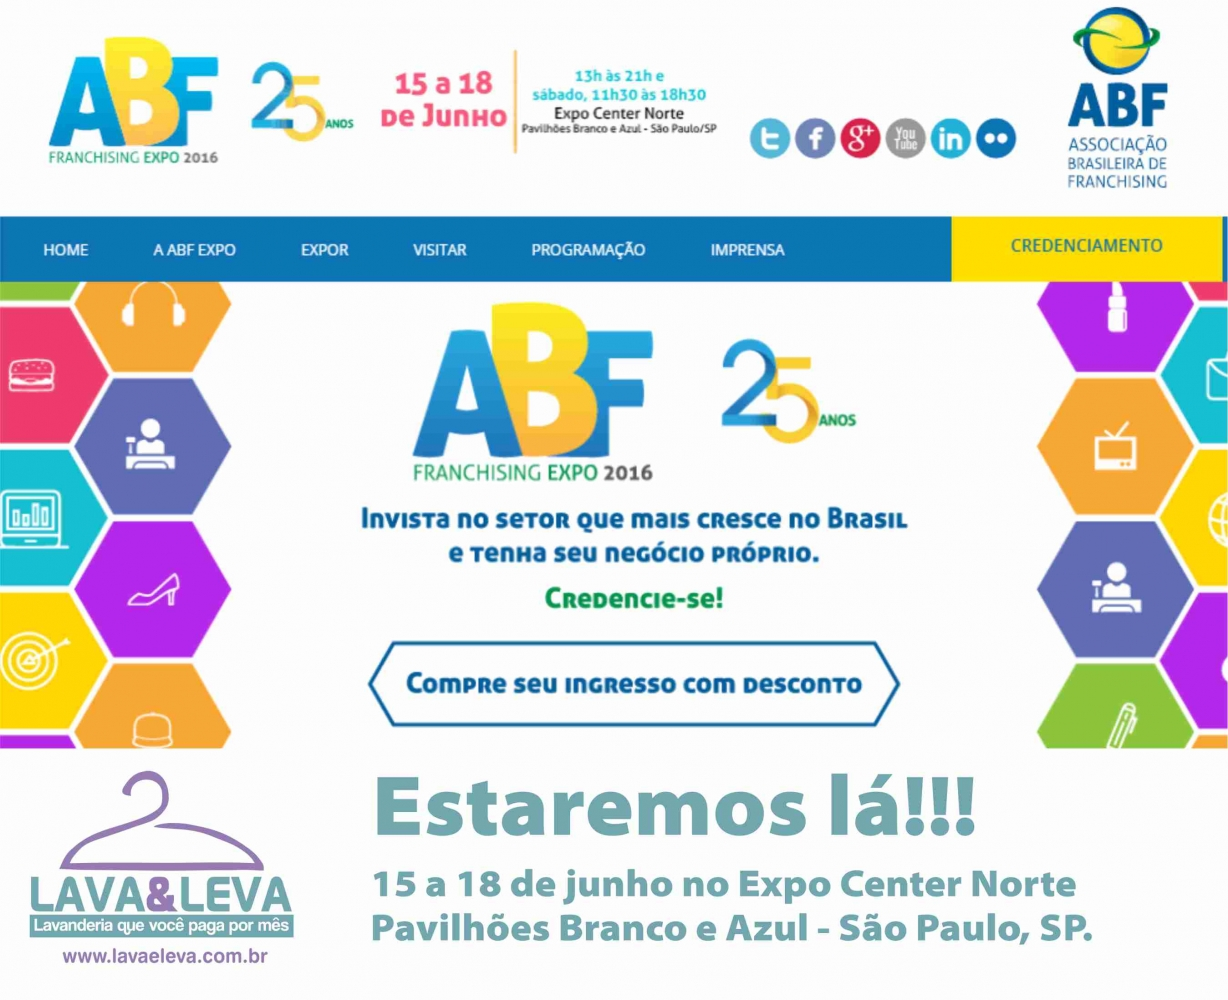 Noticias Lava e Leva na ABF Expo Franchising SP 2016